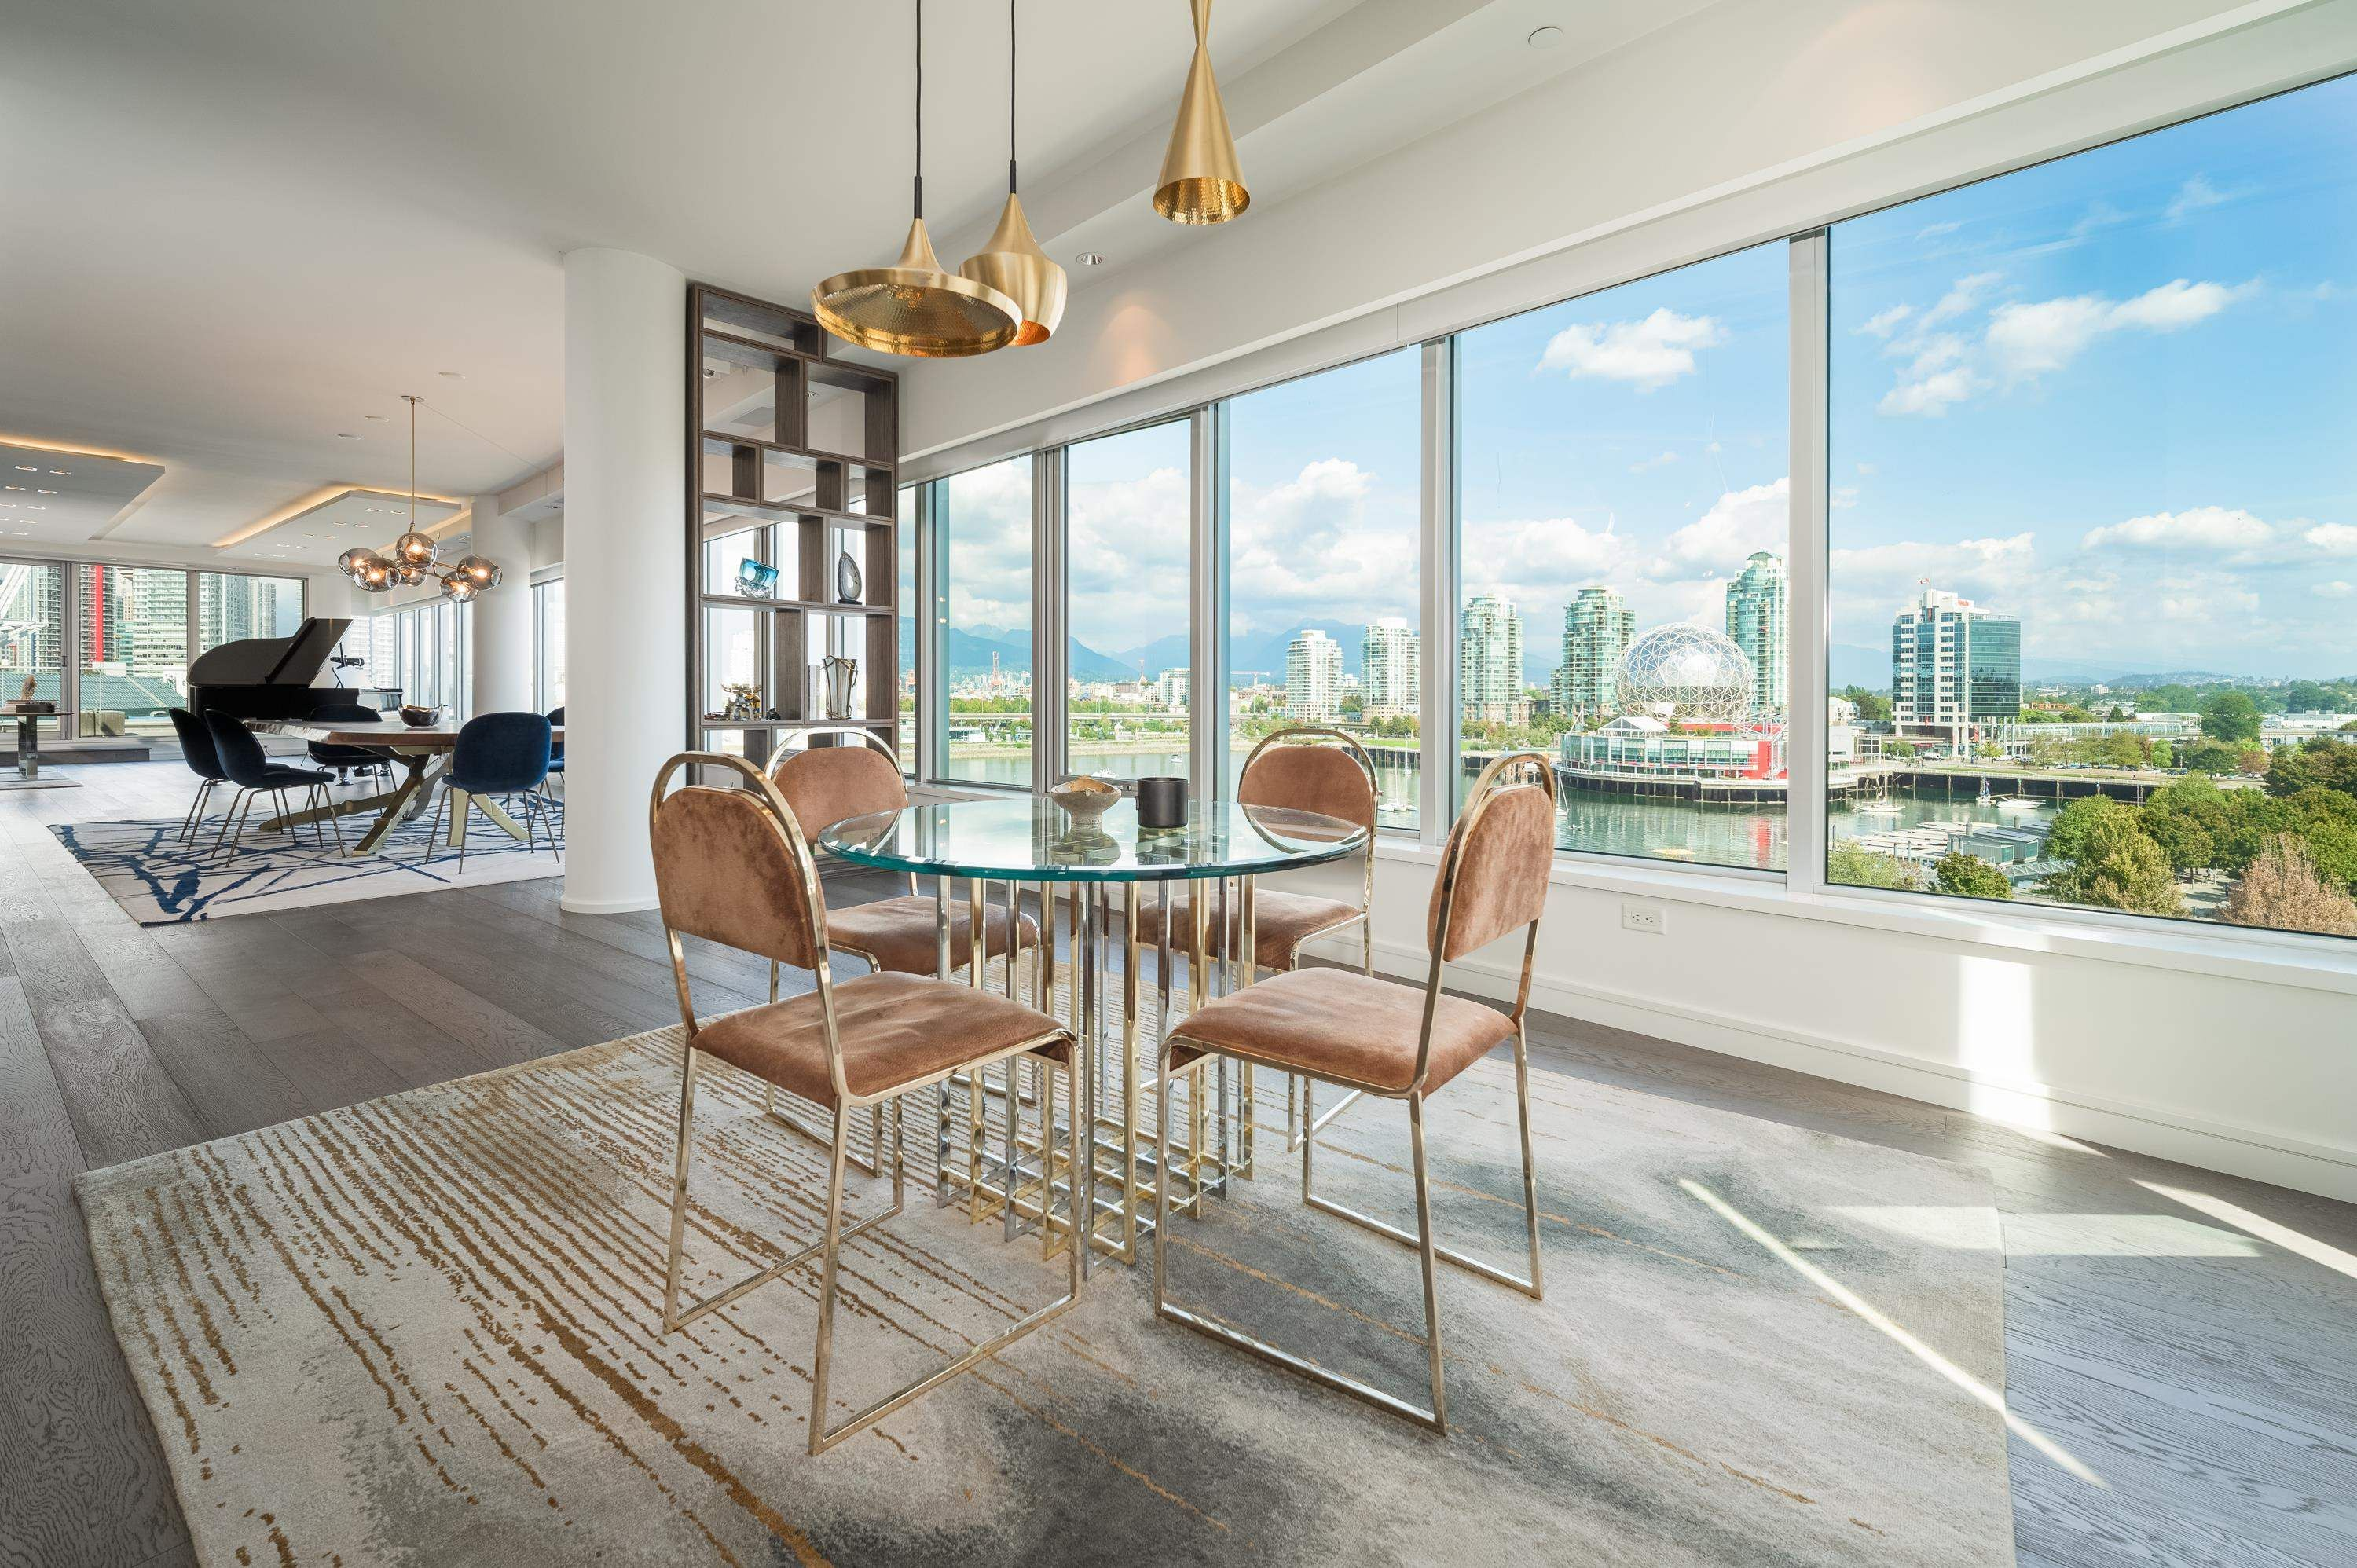 """Main Photo: 701 151 ATHLETES Way in Vancouver: False Creek Condo for sale in """"CANADA HOUSE ON THE WATER"""" (Vancouver West)  : MLS®# R2617164"""